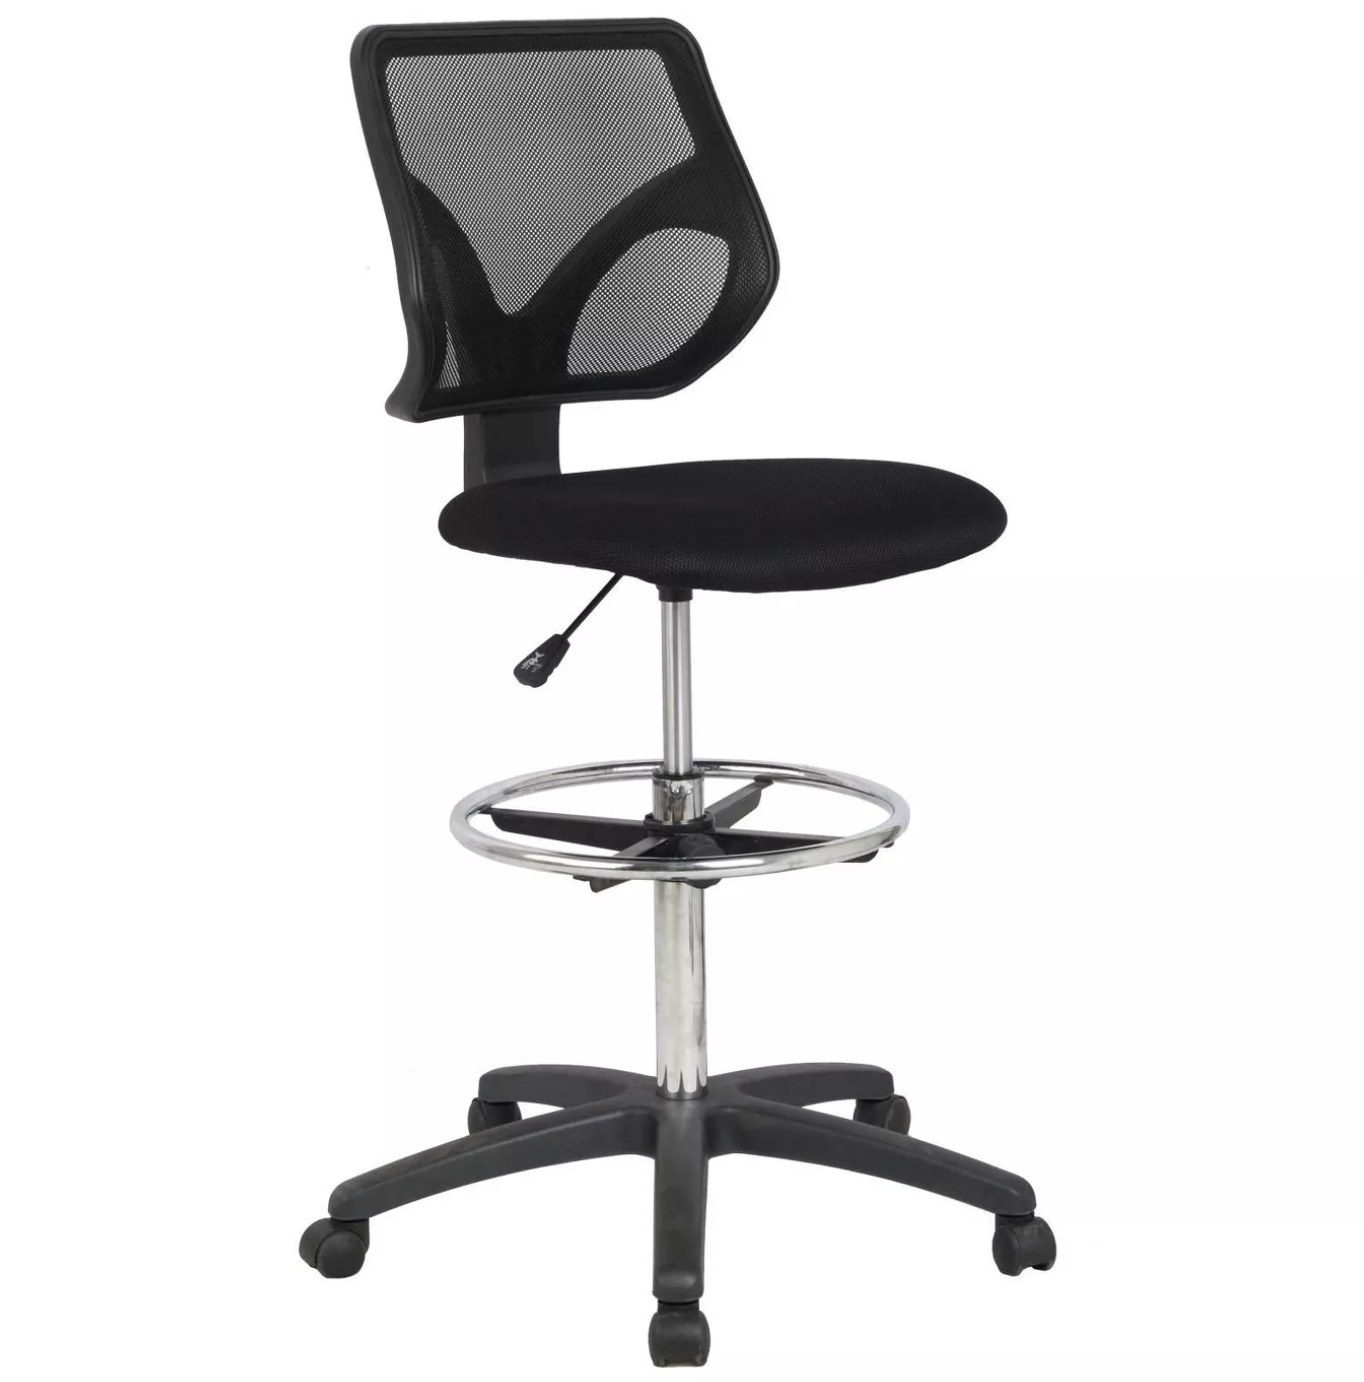 The drafting chair